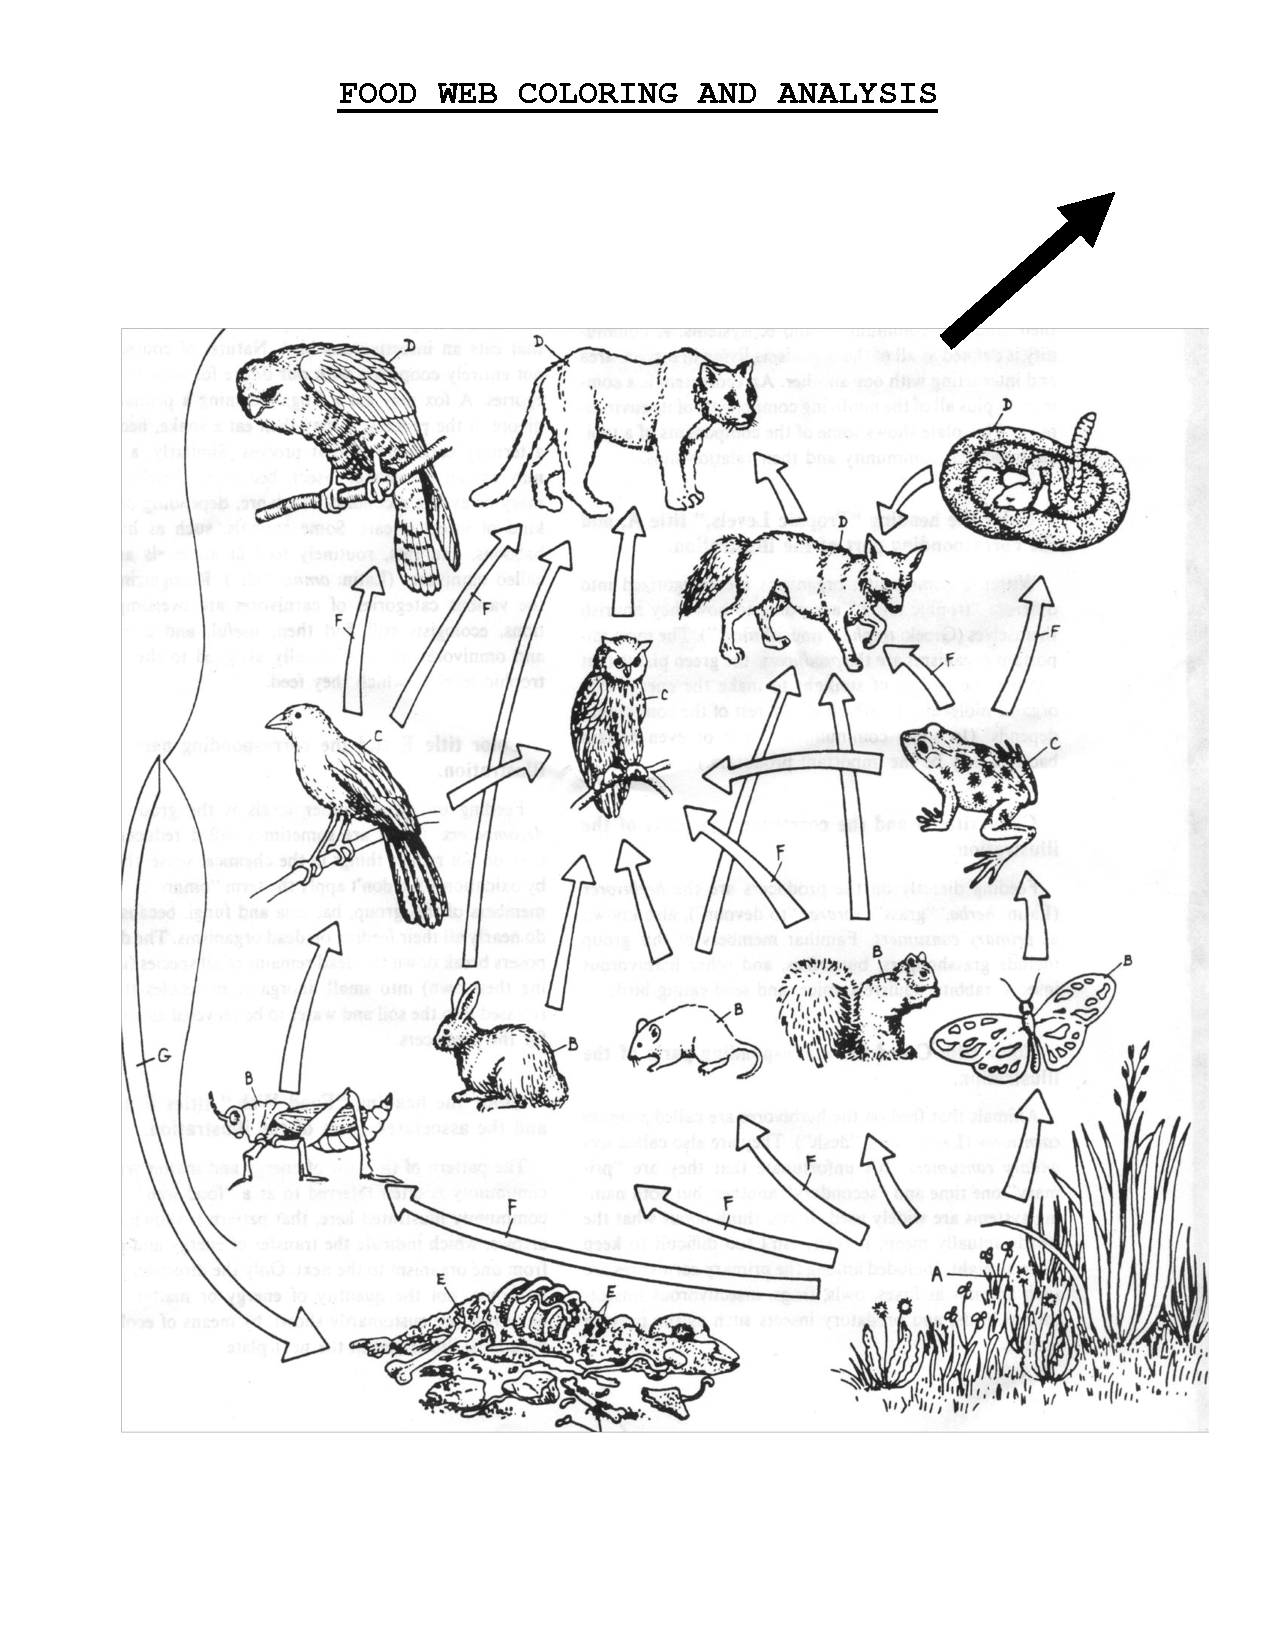 Food Web Coloring Sheet Scope Of Work Template Life Science